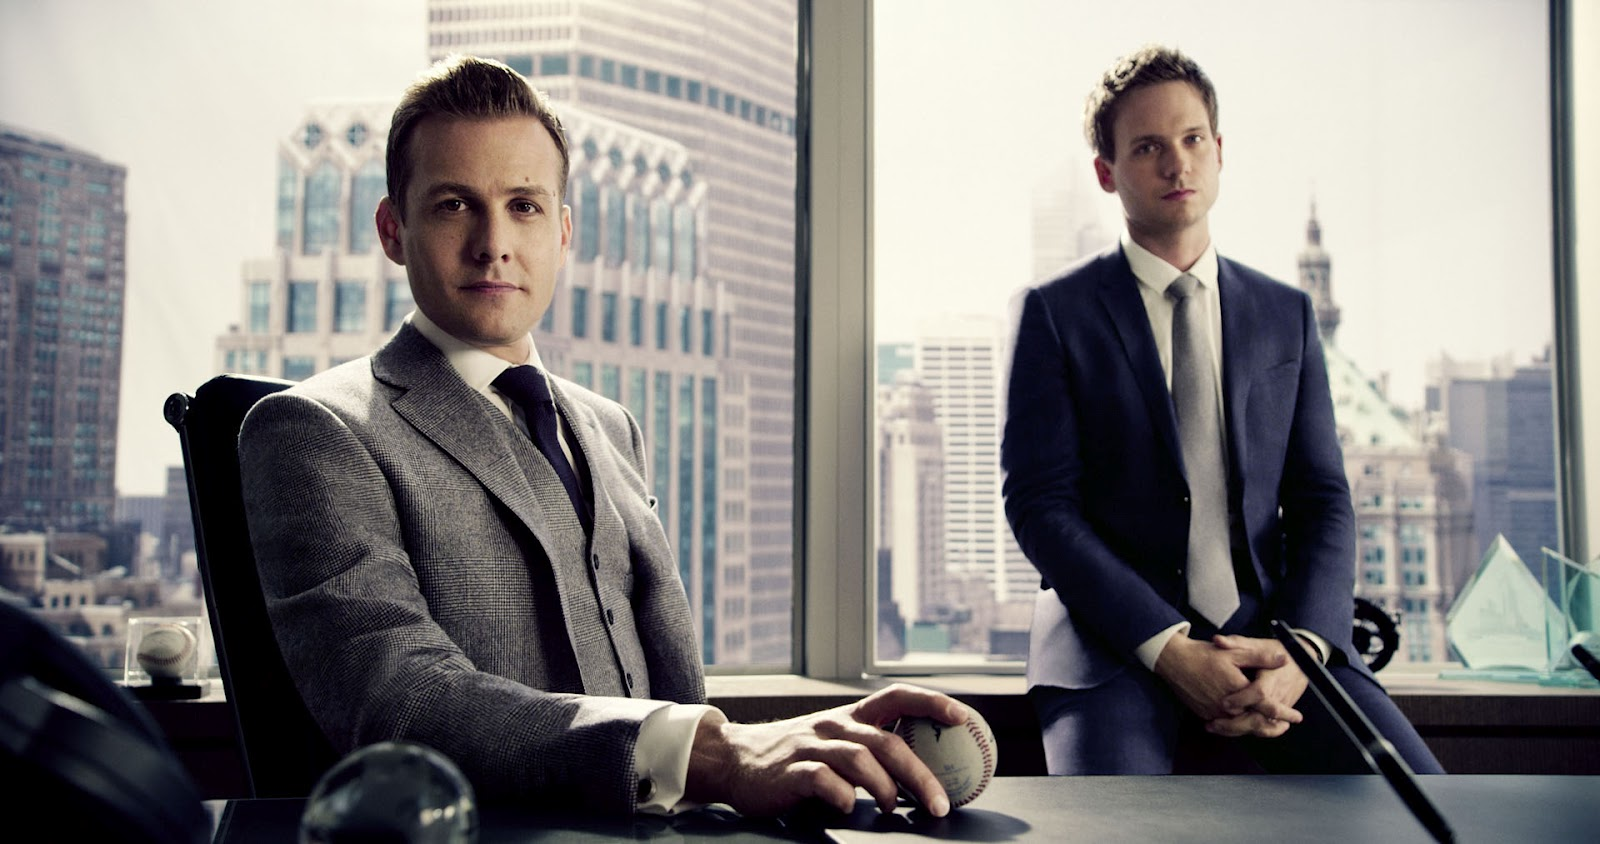 suits-usa-harvey-mike bcb85